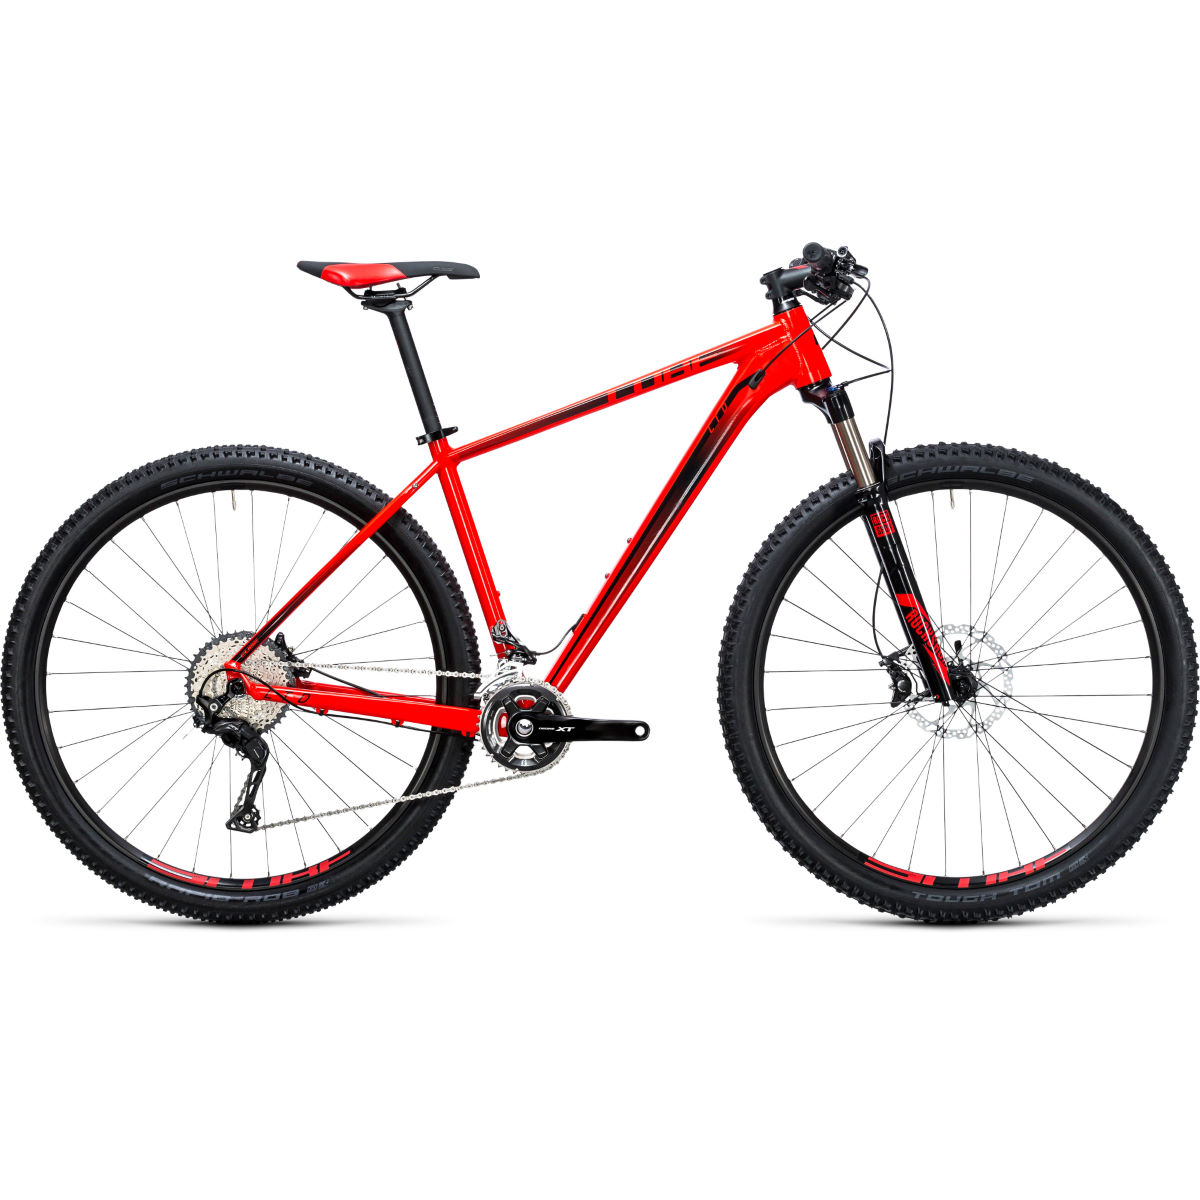 VTT semi-rigide Cube LTD Race 27,5 pouces (2017) - Red - Black